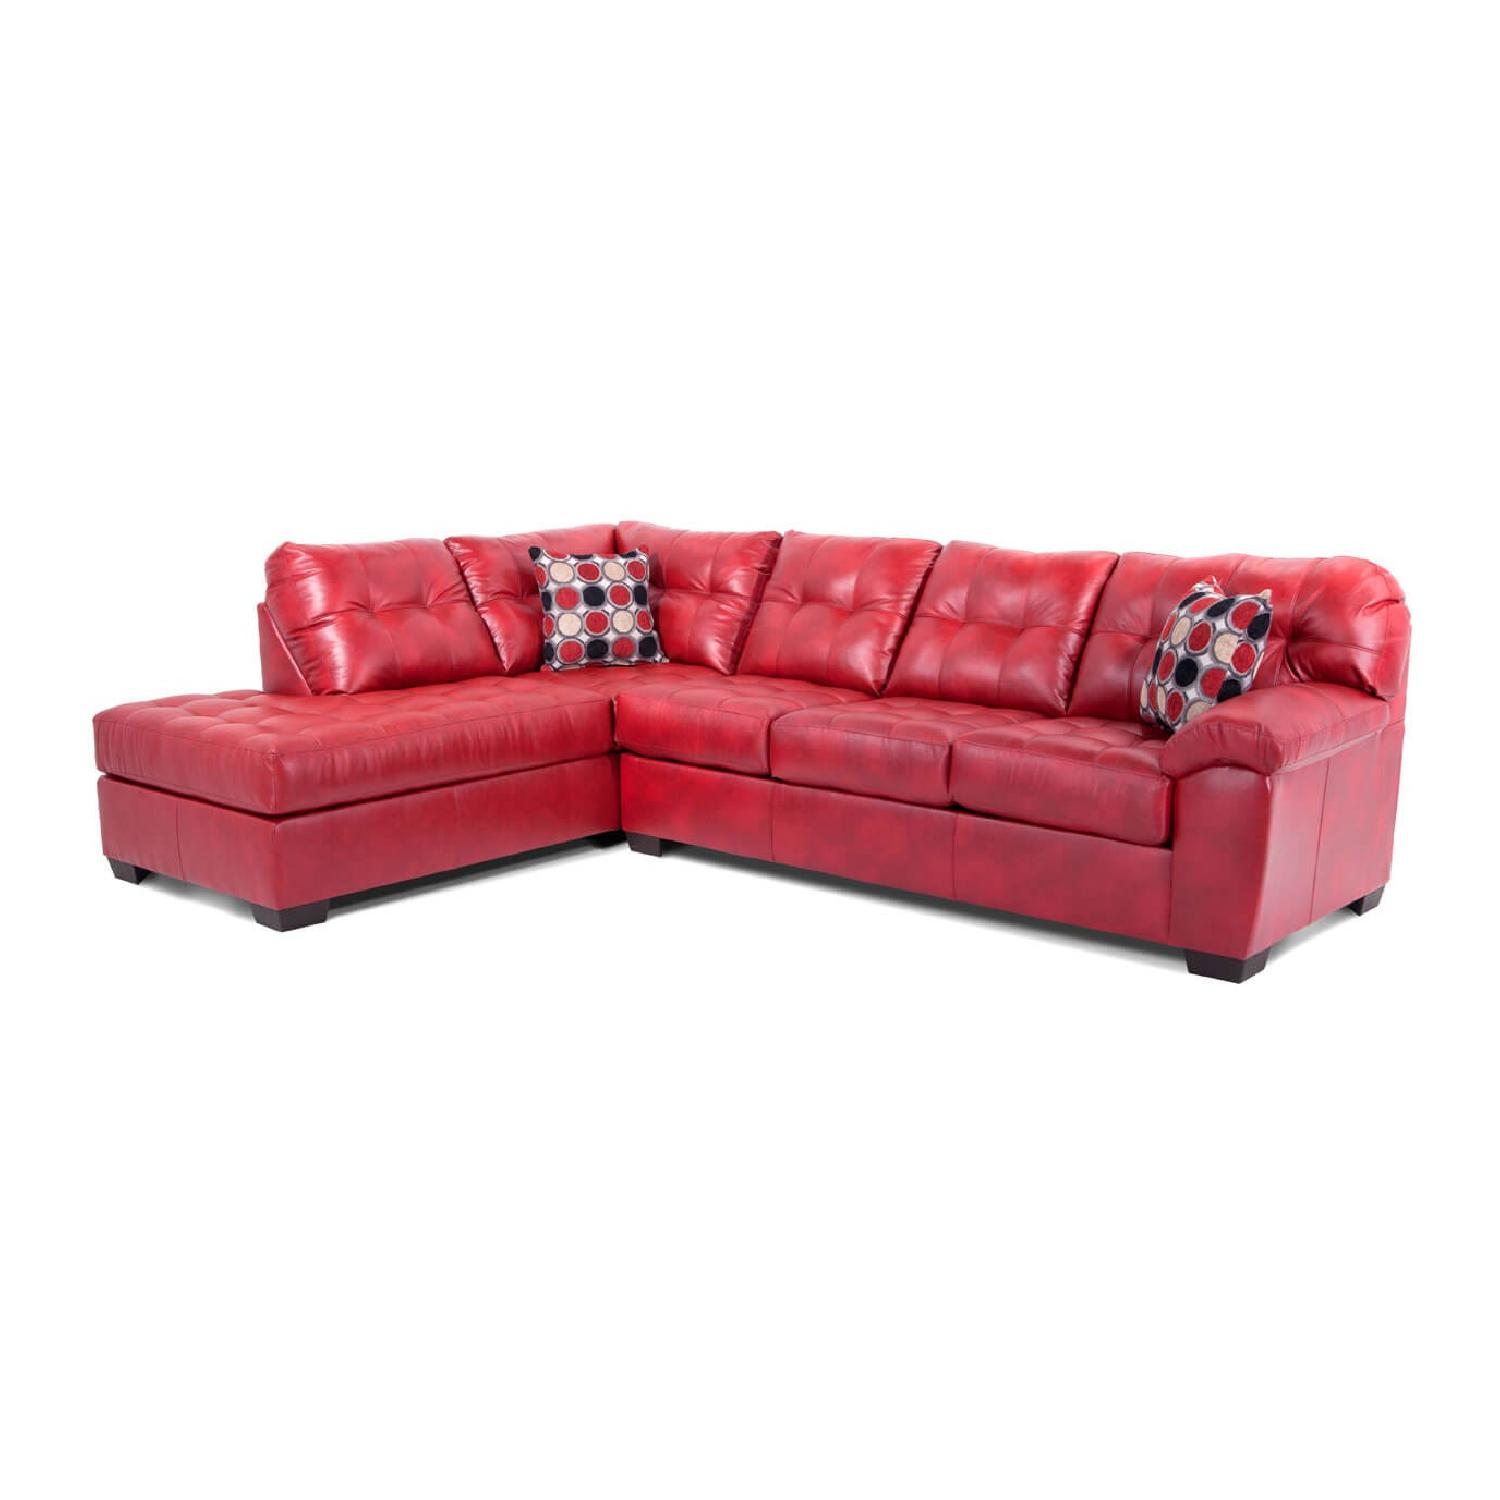 barcelona of sofas floral full and sofa design size loveseat large sleeper sectional